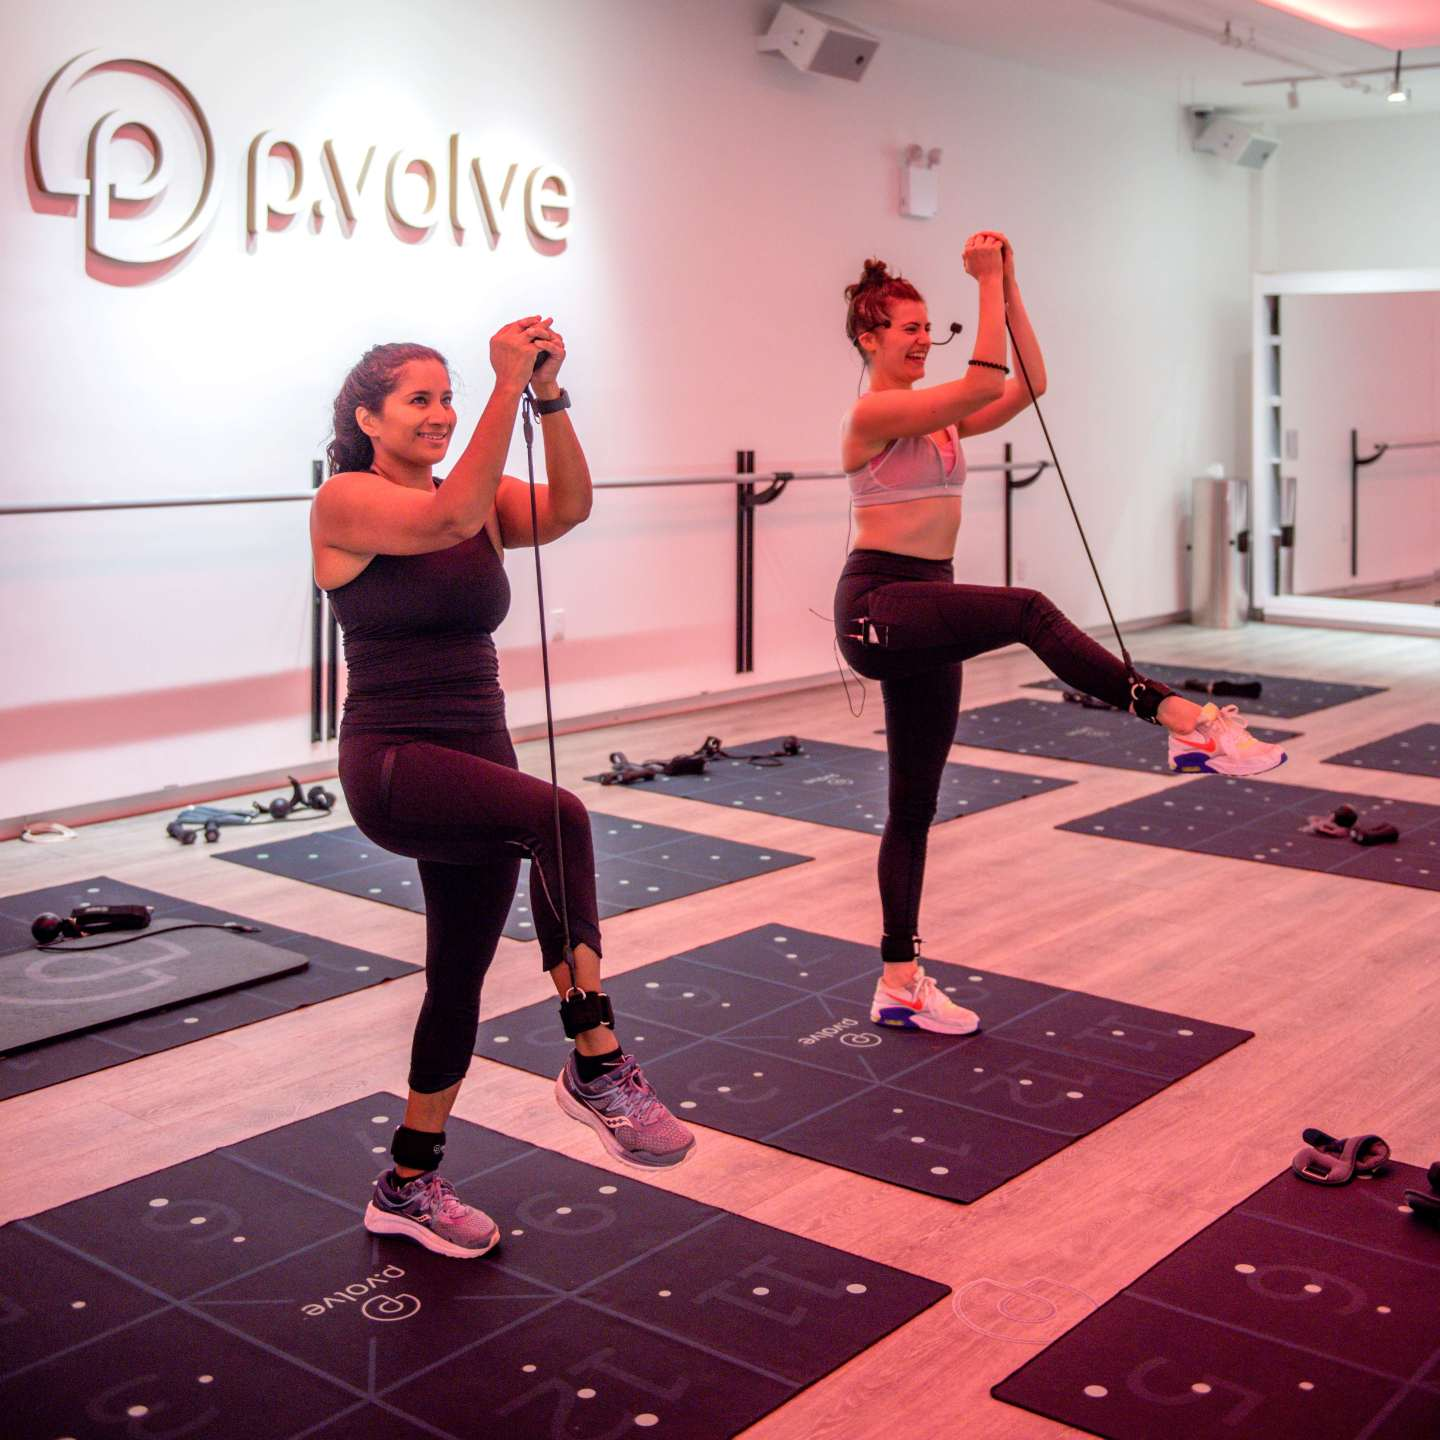 Best Workouts in 2021: P.volve Review